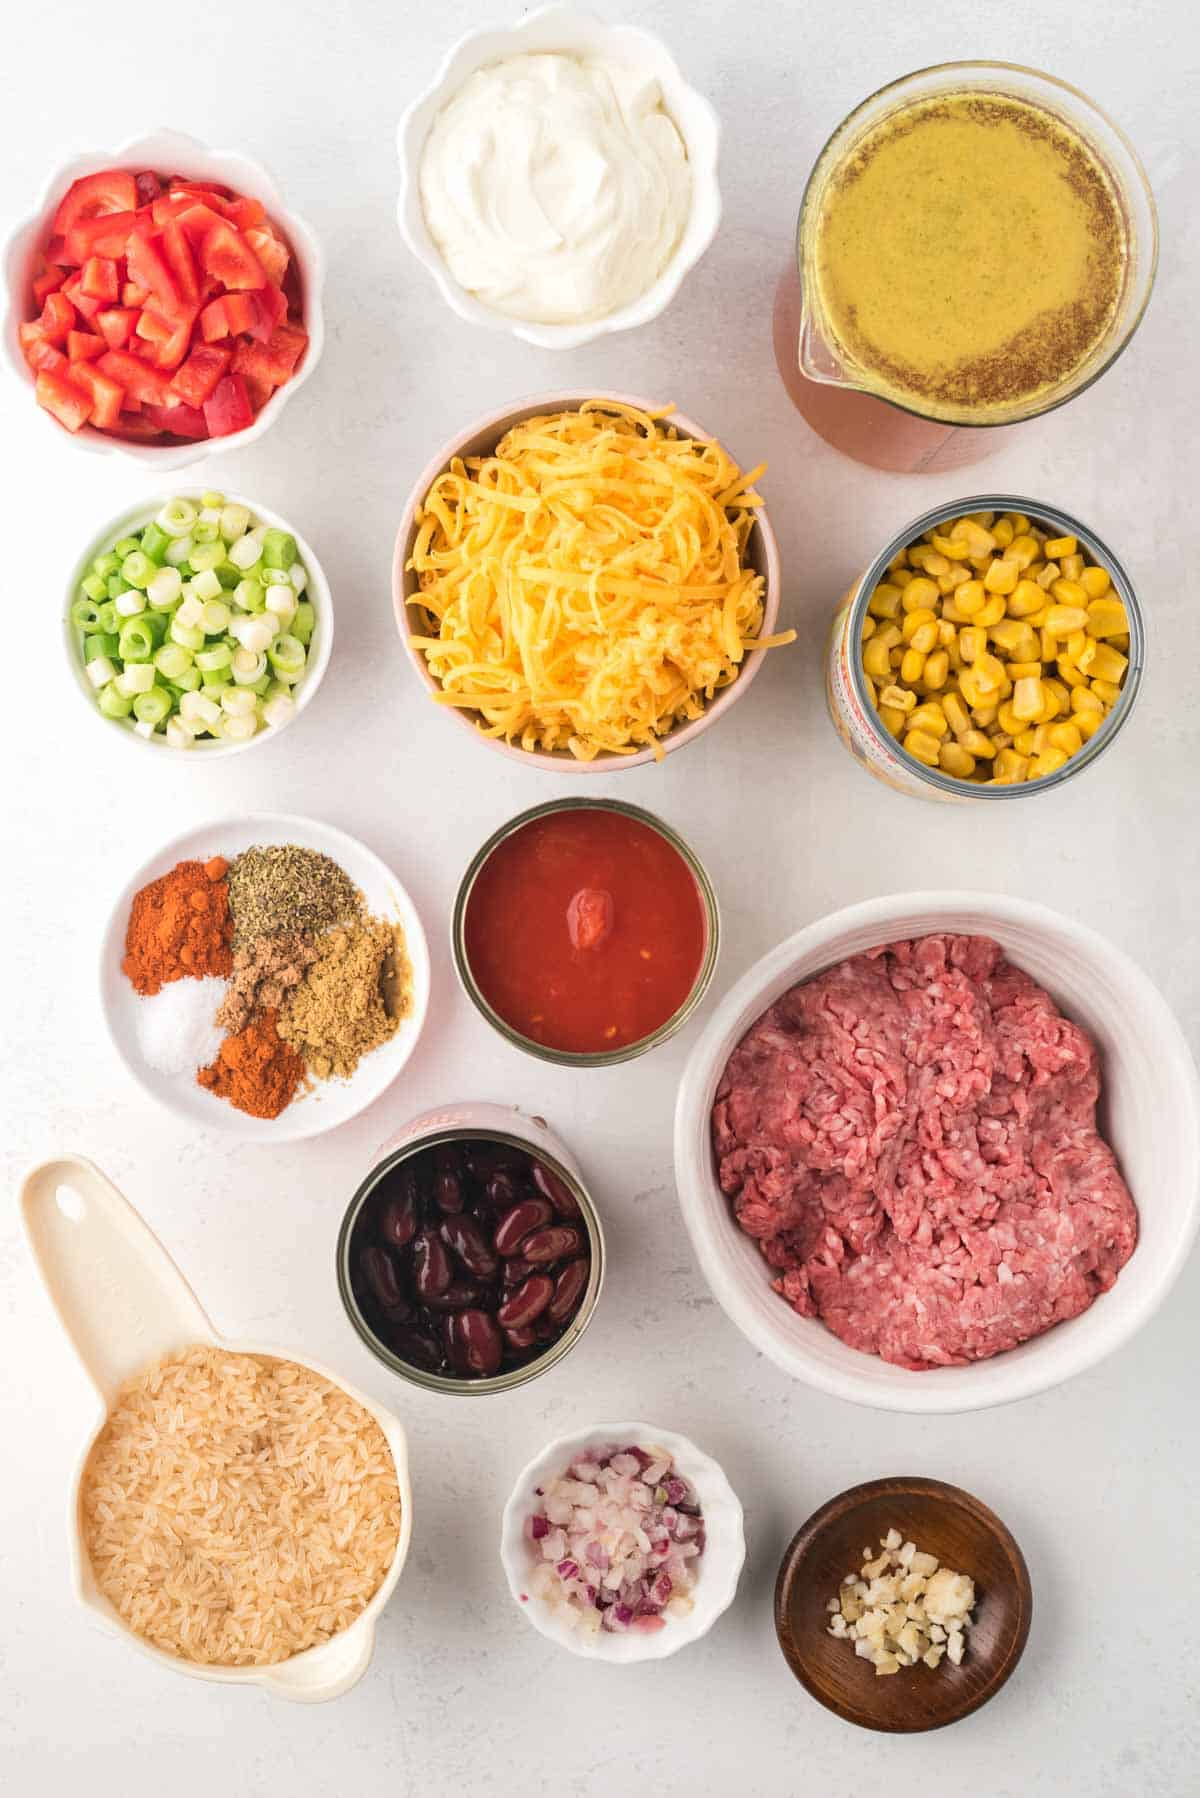 bowls of raw ground beef, garlic, onion, uncooked rice, various spices, sliced green onions, shredded cheesechopped red bell pepper, sour cream, beef broth, and cand of kidney beans, diced tomatoes, and corn on a tabletop